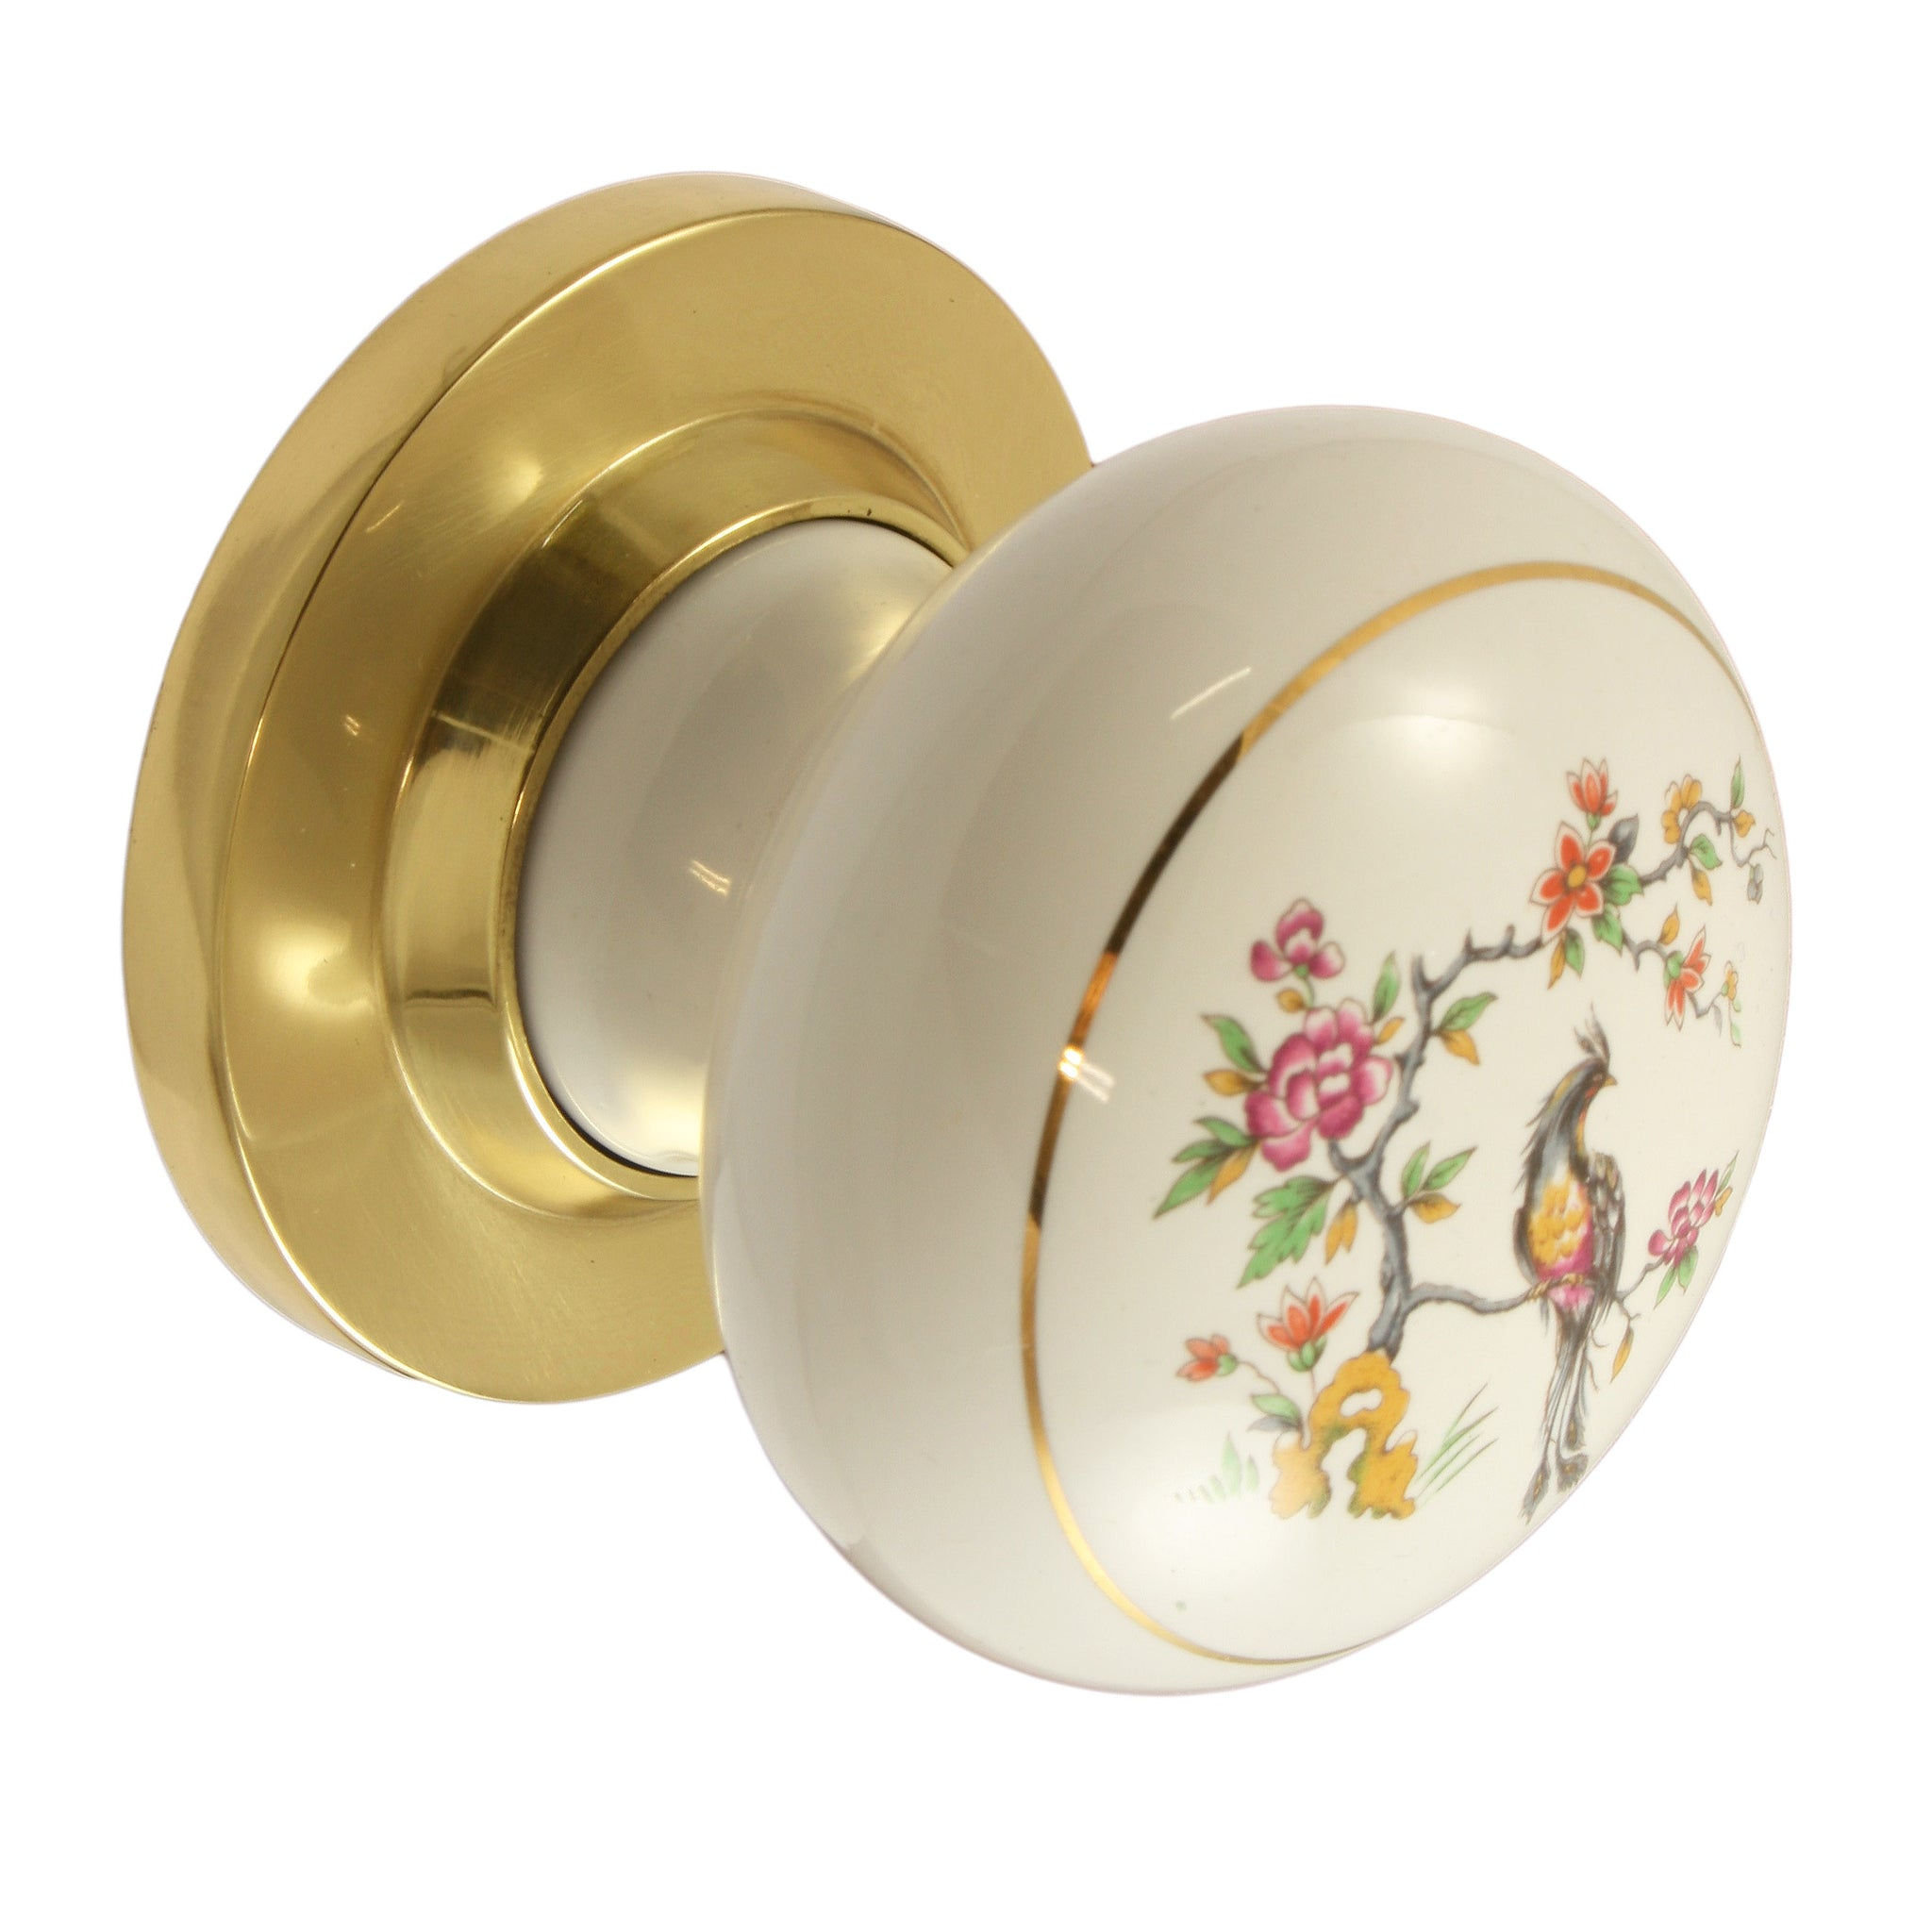 Festoon / Brass Ceramic Mortice Door Knobs